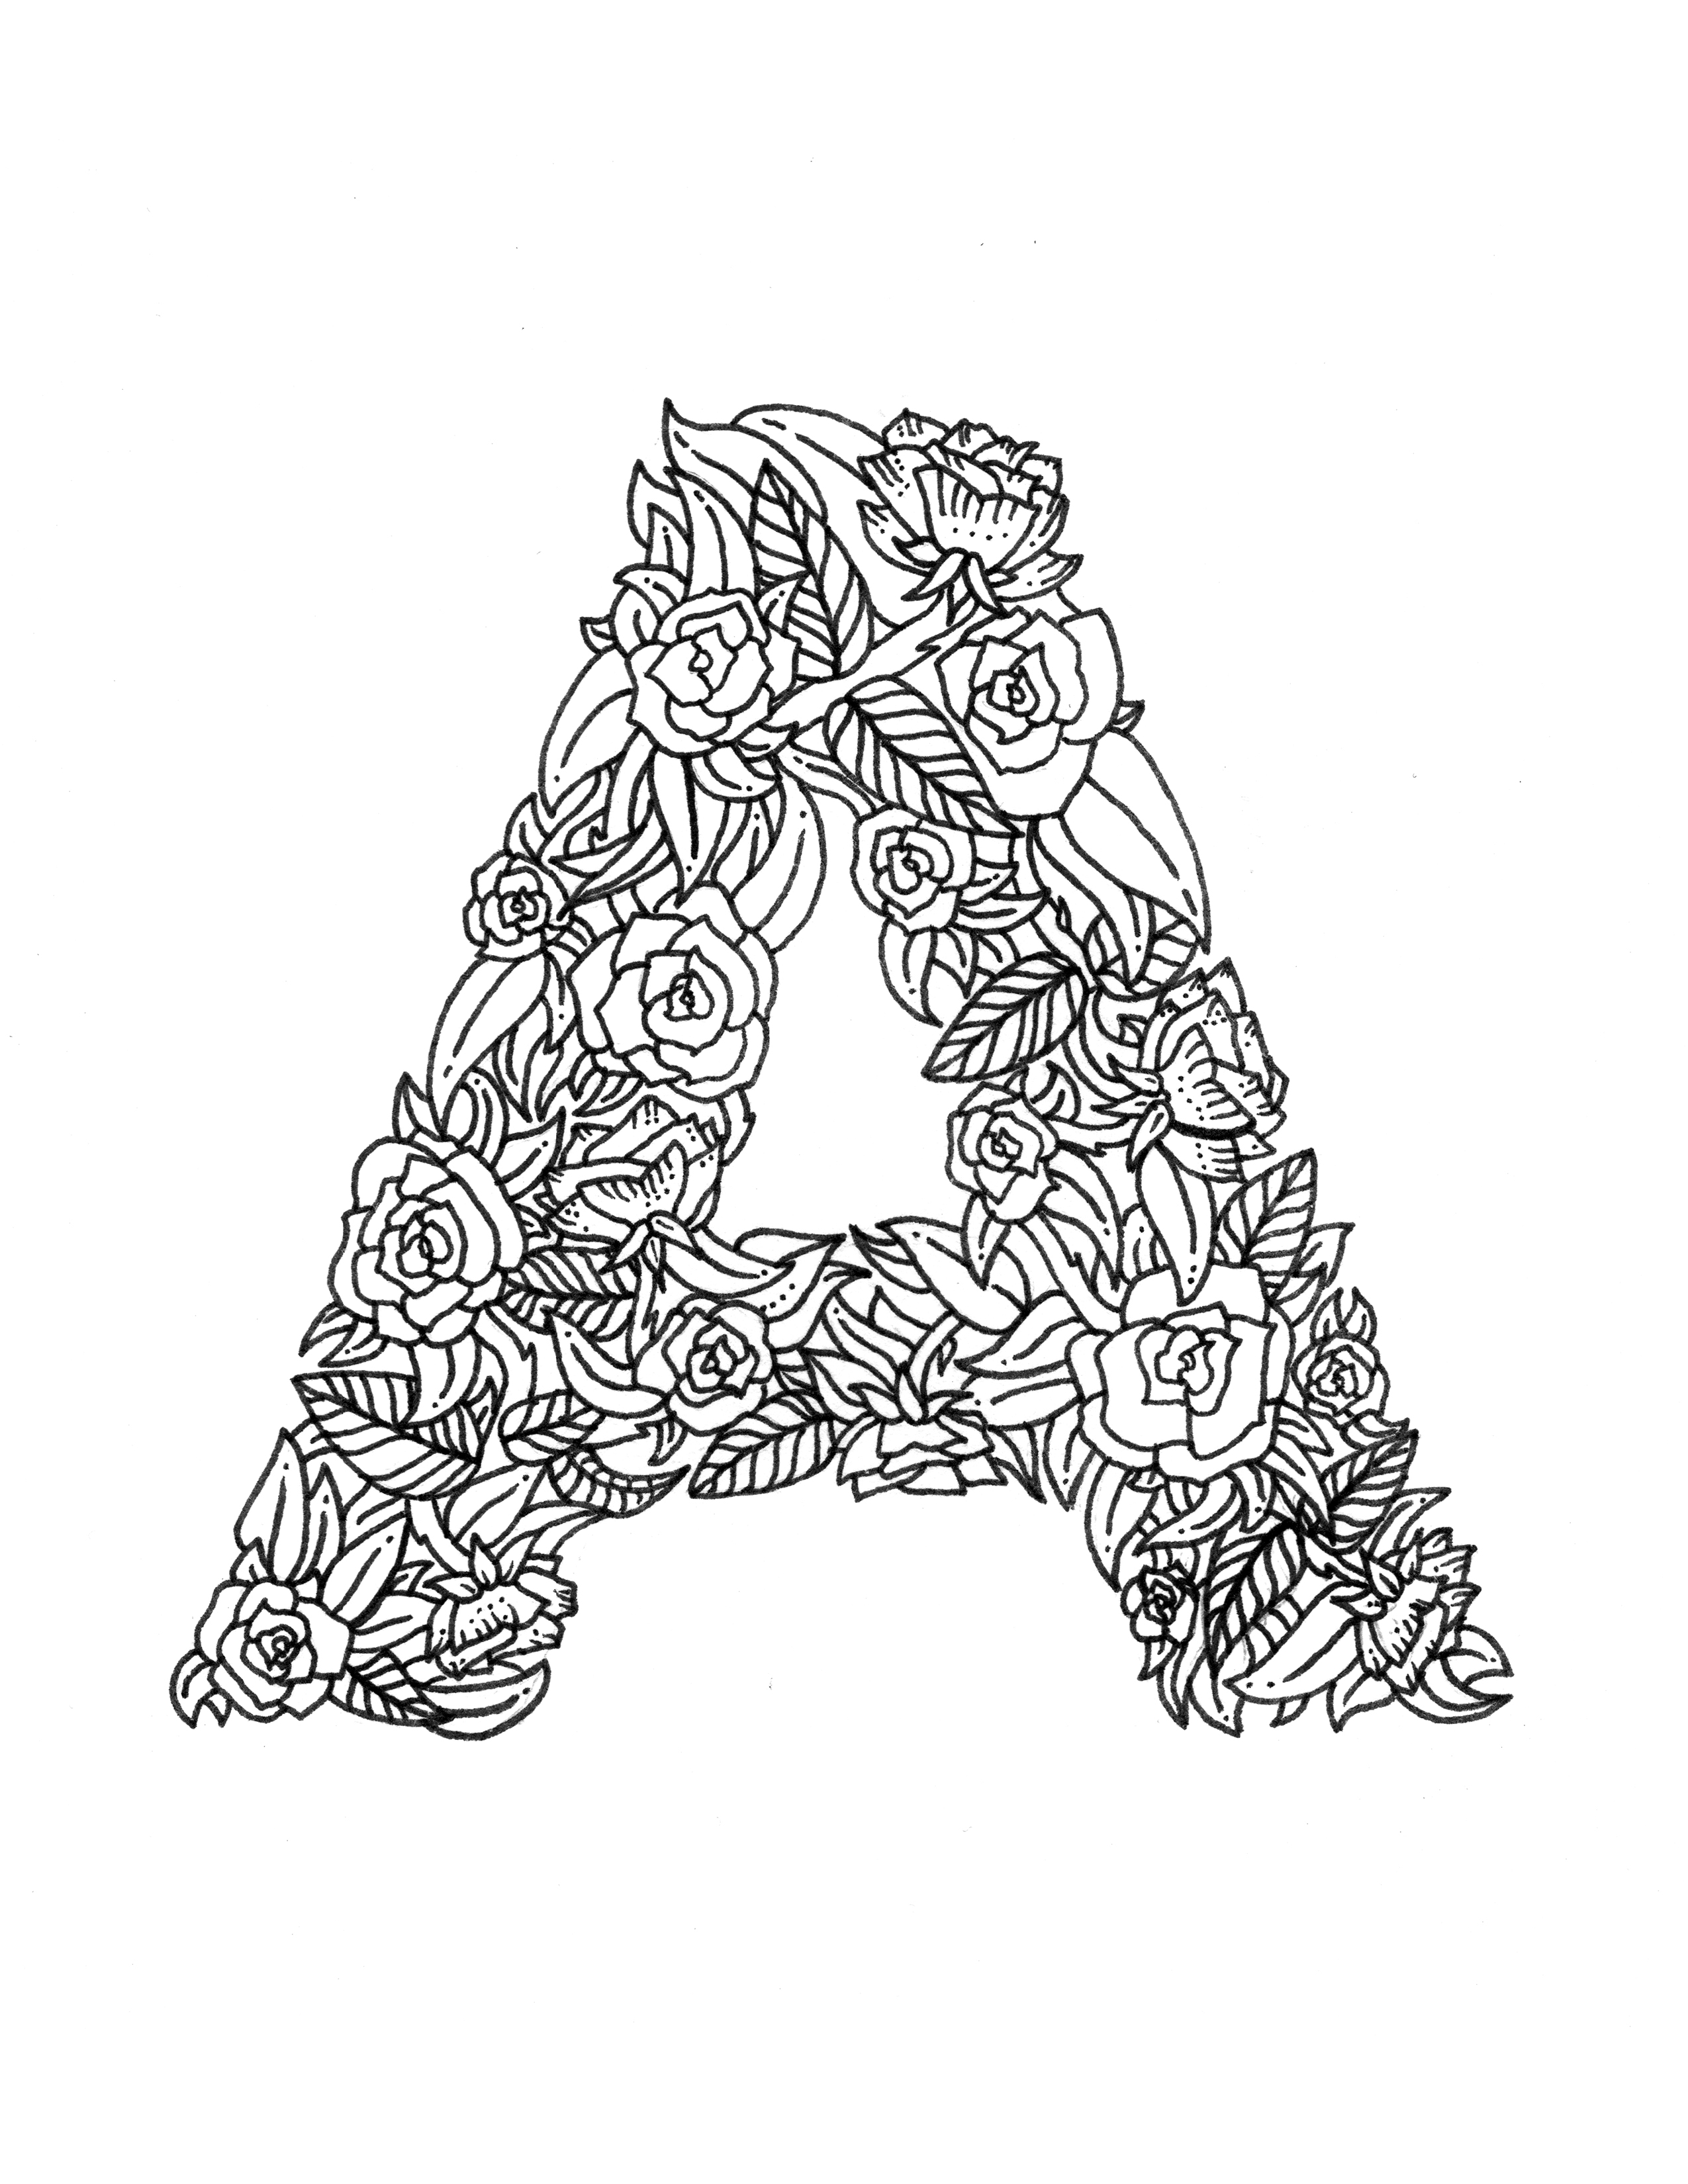 adult coloring pages letter a | Download Free Coloring Pages | Boelter Design Co.